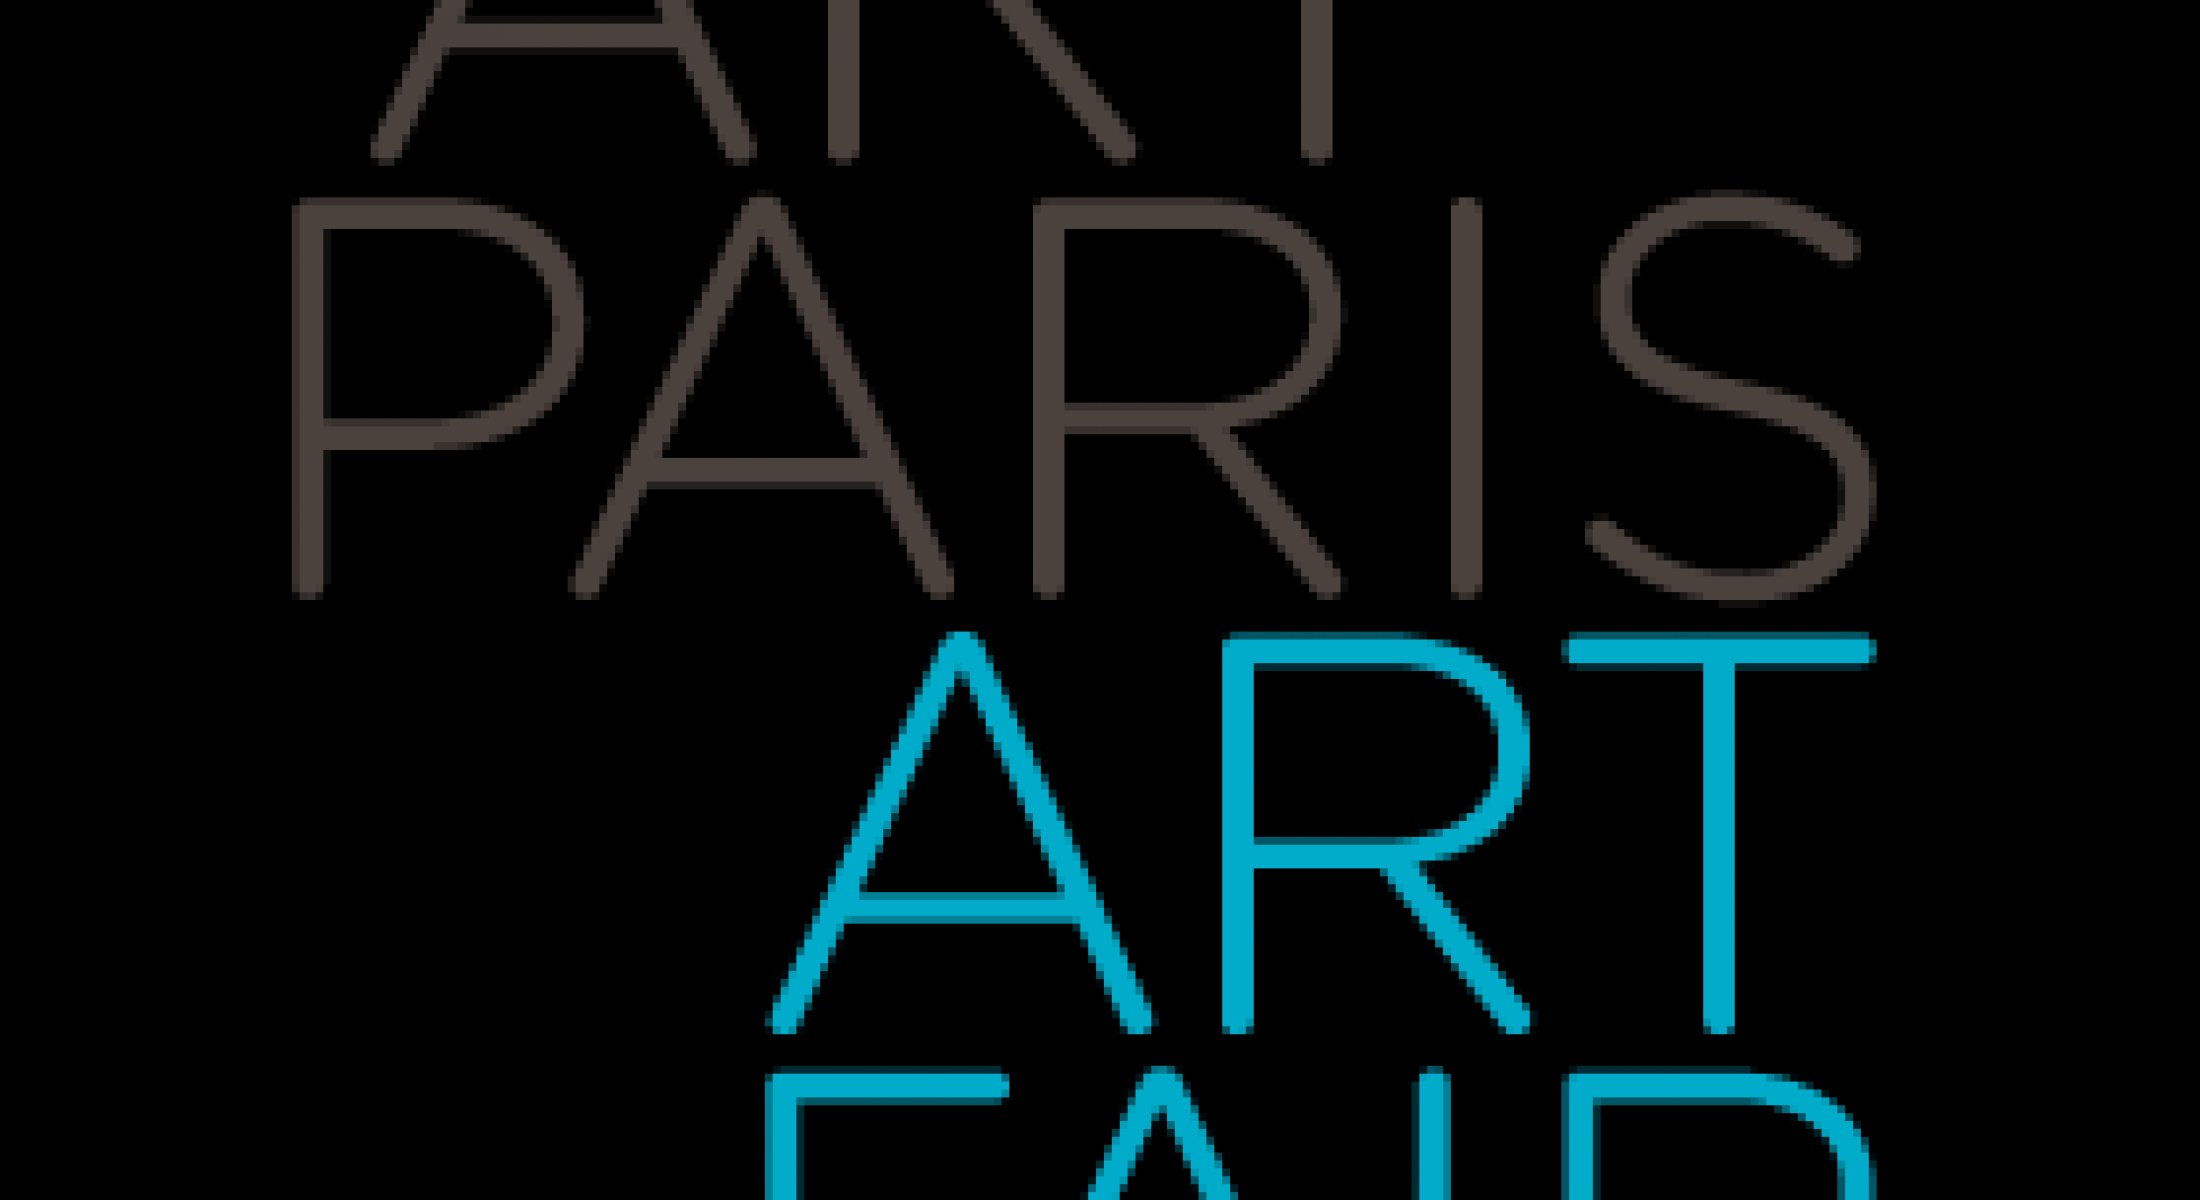 Cake Art Festival 2018 : Art Paris Art Fair 2018